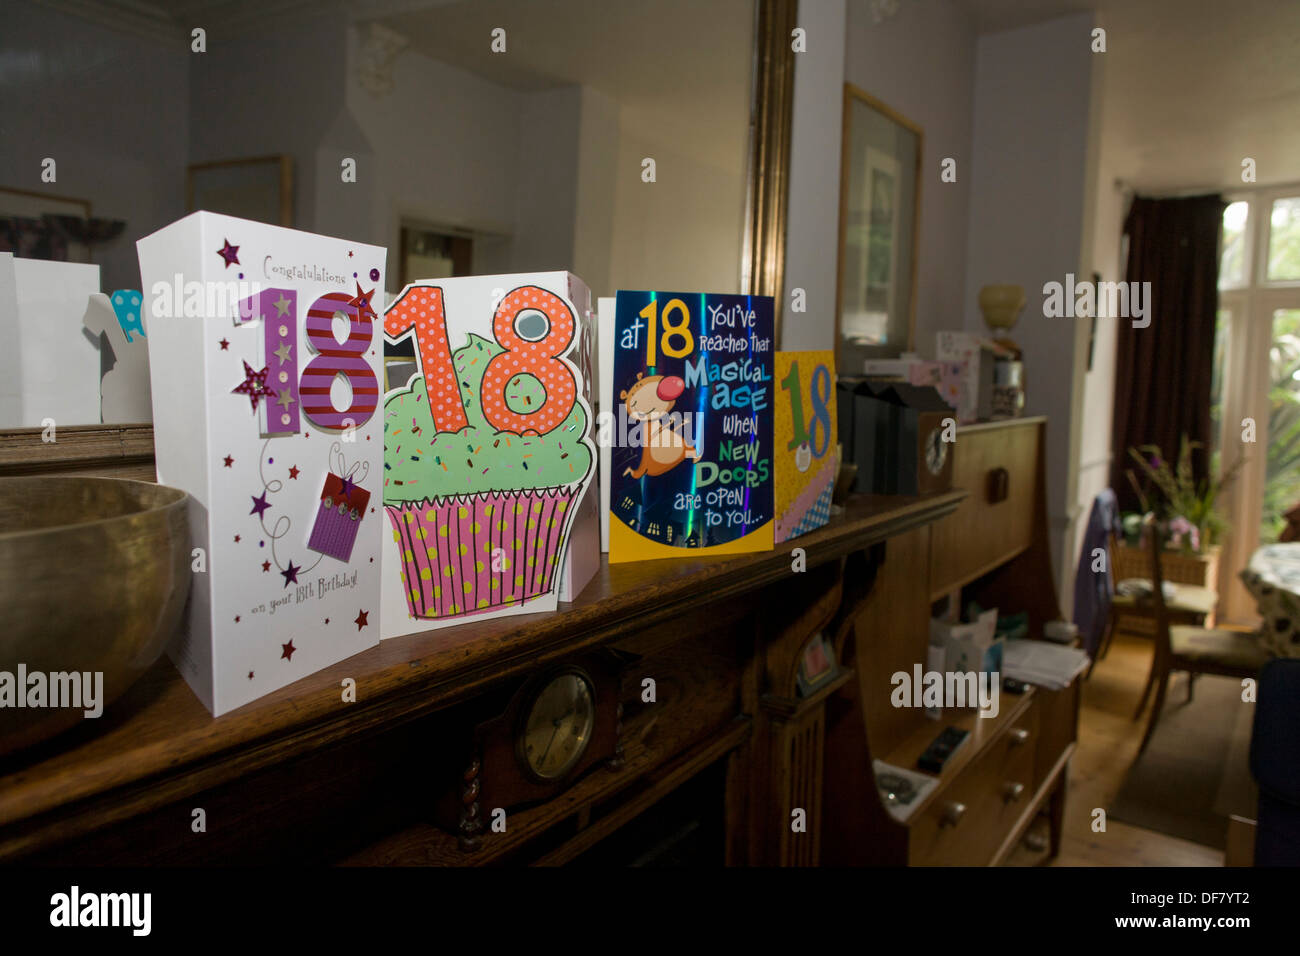 18th birthday cards mark the rite of passage, from childhood to adulthood, on a living room mantlepiece. - Stock Image